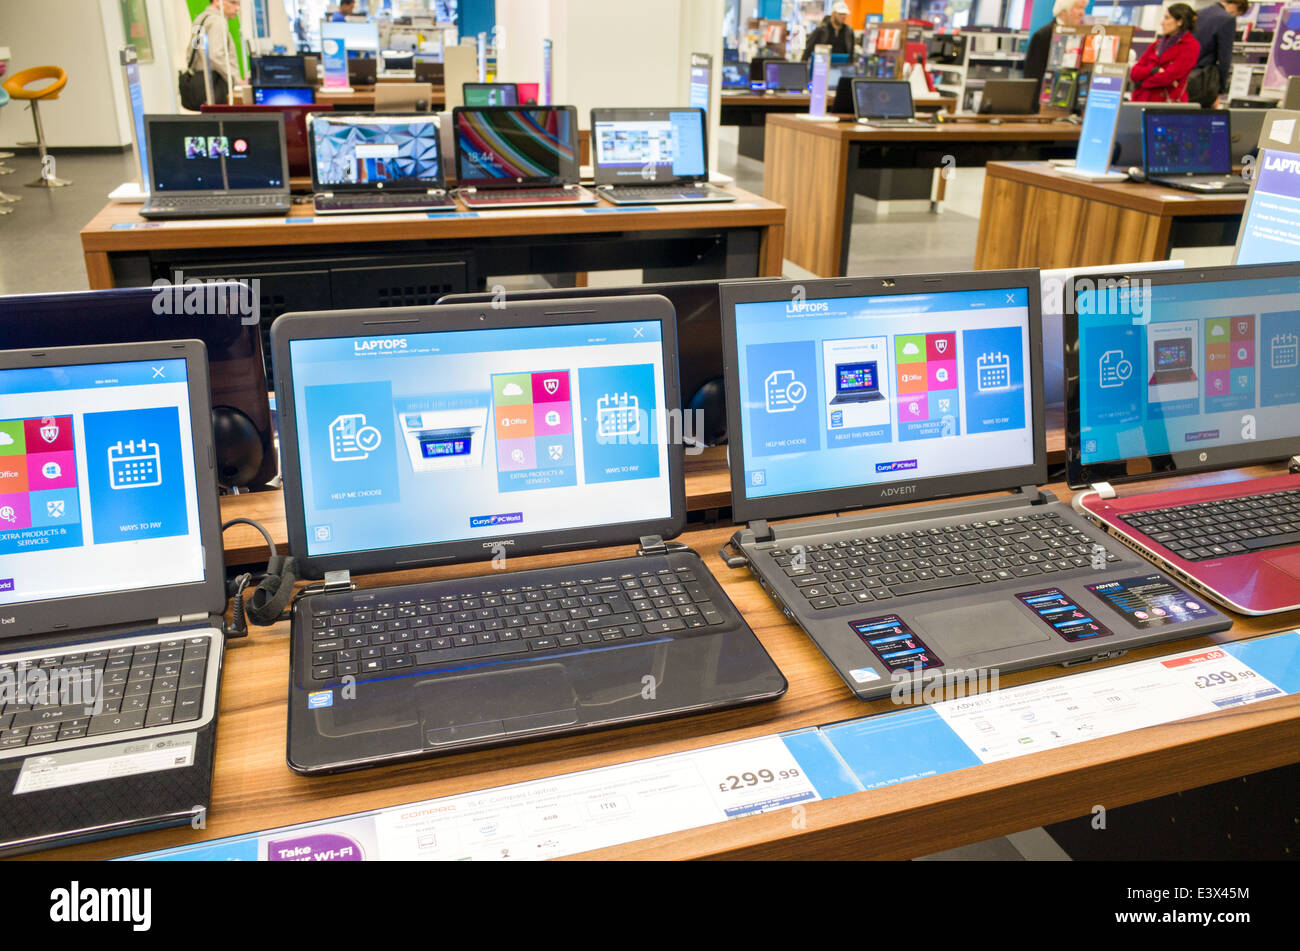 Laptop computers on display at Currys PC World, England, UK - Stock Image